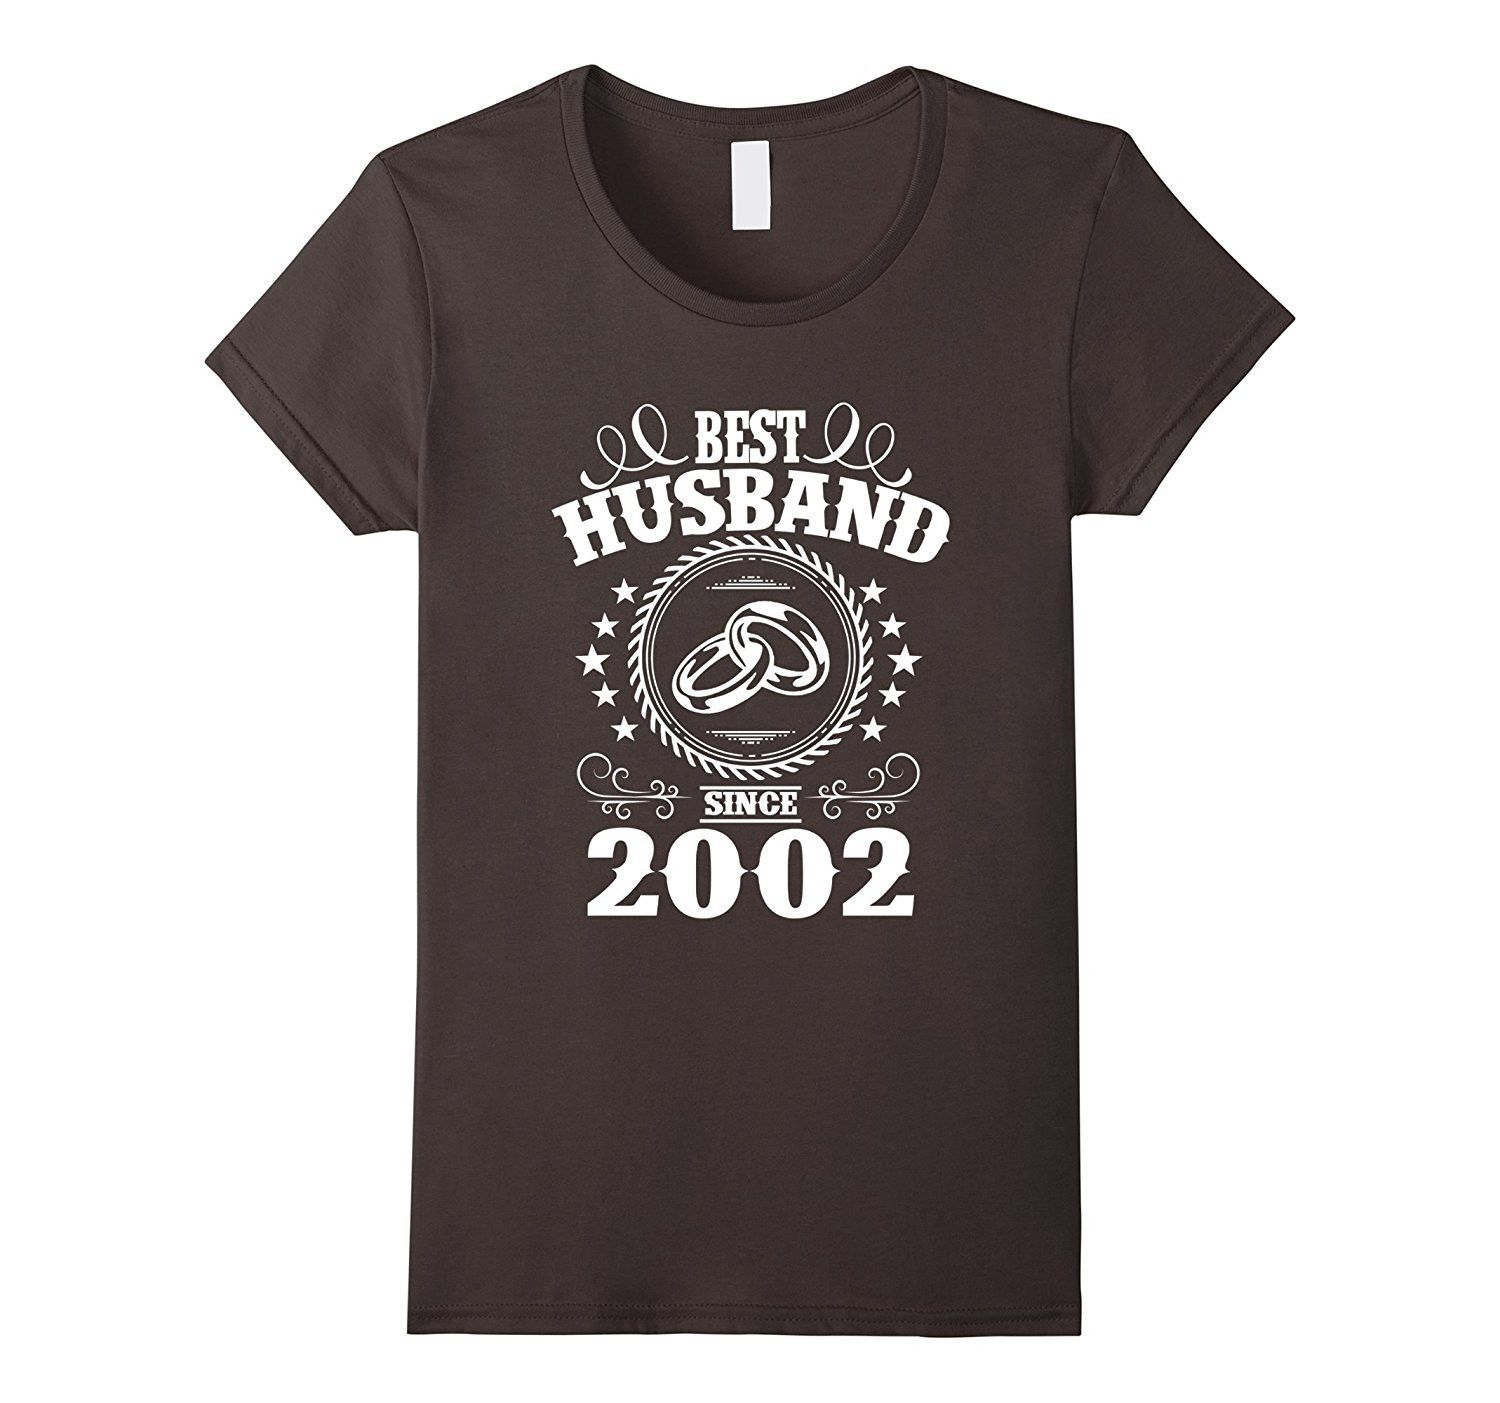 15th Wedding Anniversary TShirts For Husband From Wife